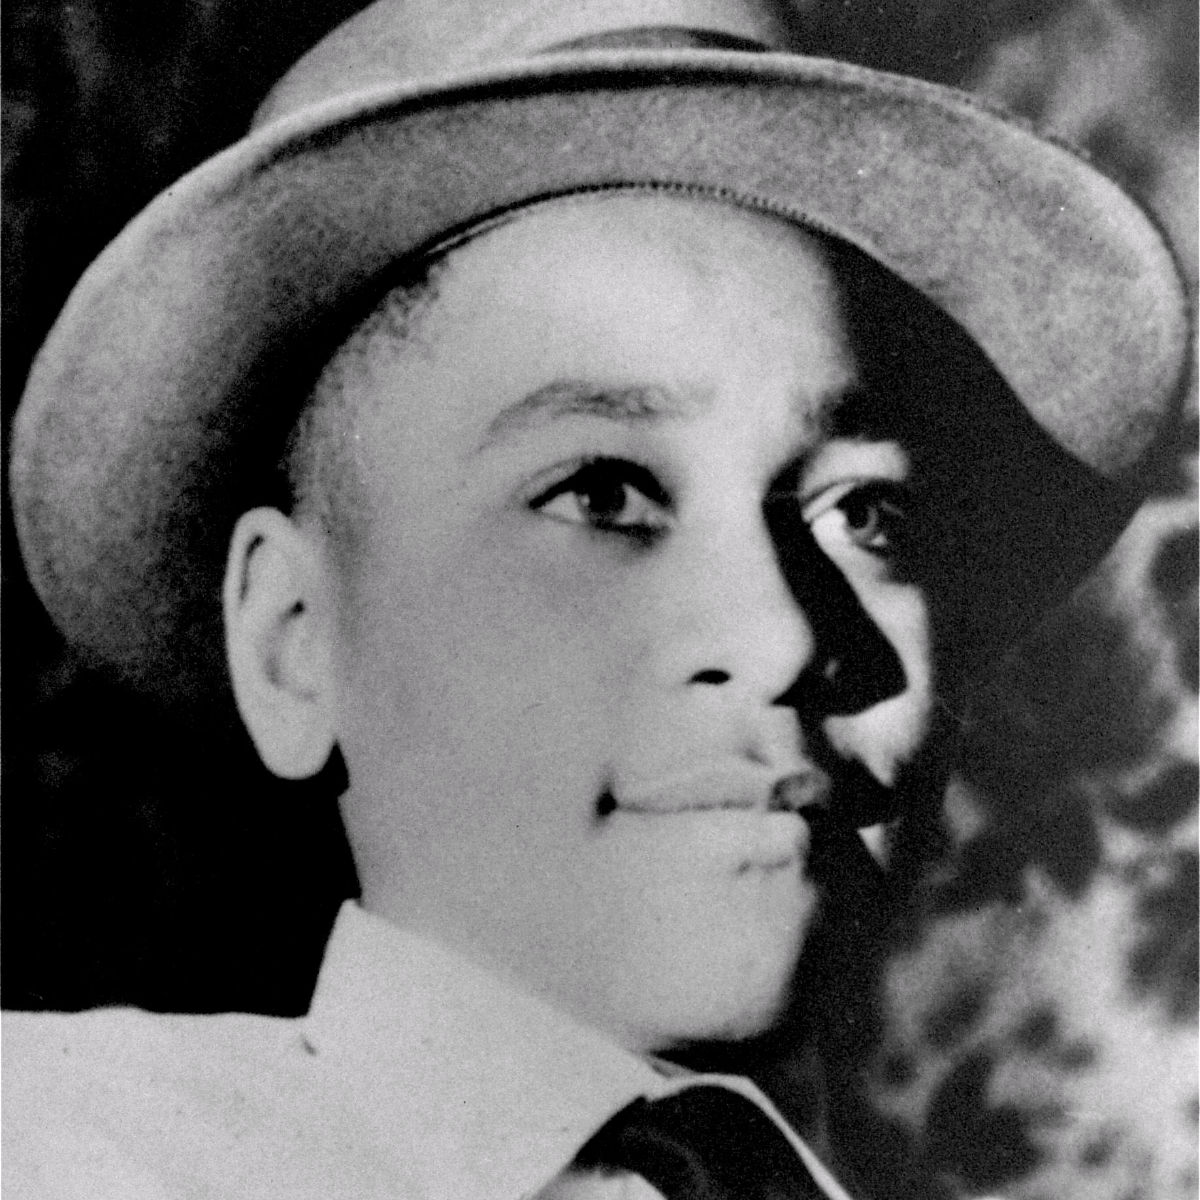 An undated portrait of Emmett Louis Till, a black 14 year old Chicago boy, whose weighted down body was found in the Tallahatchie River near the Delta community of Money, Mississippi, August 31, 1955. (AP Photo)